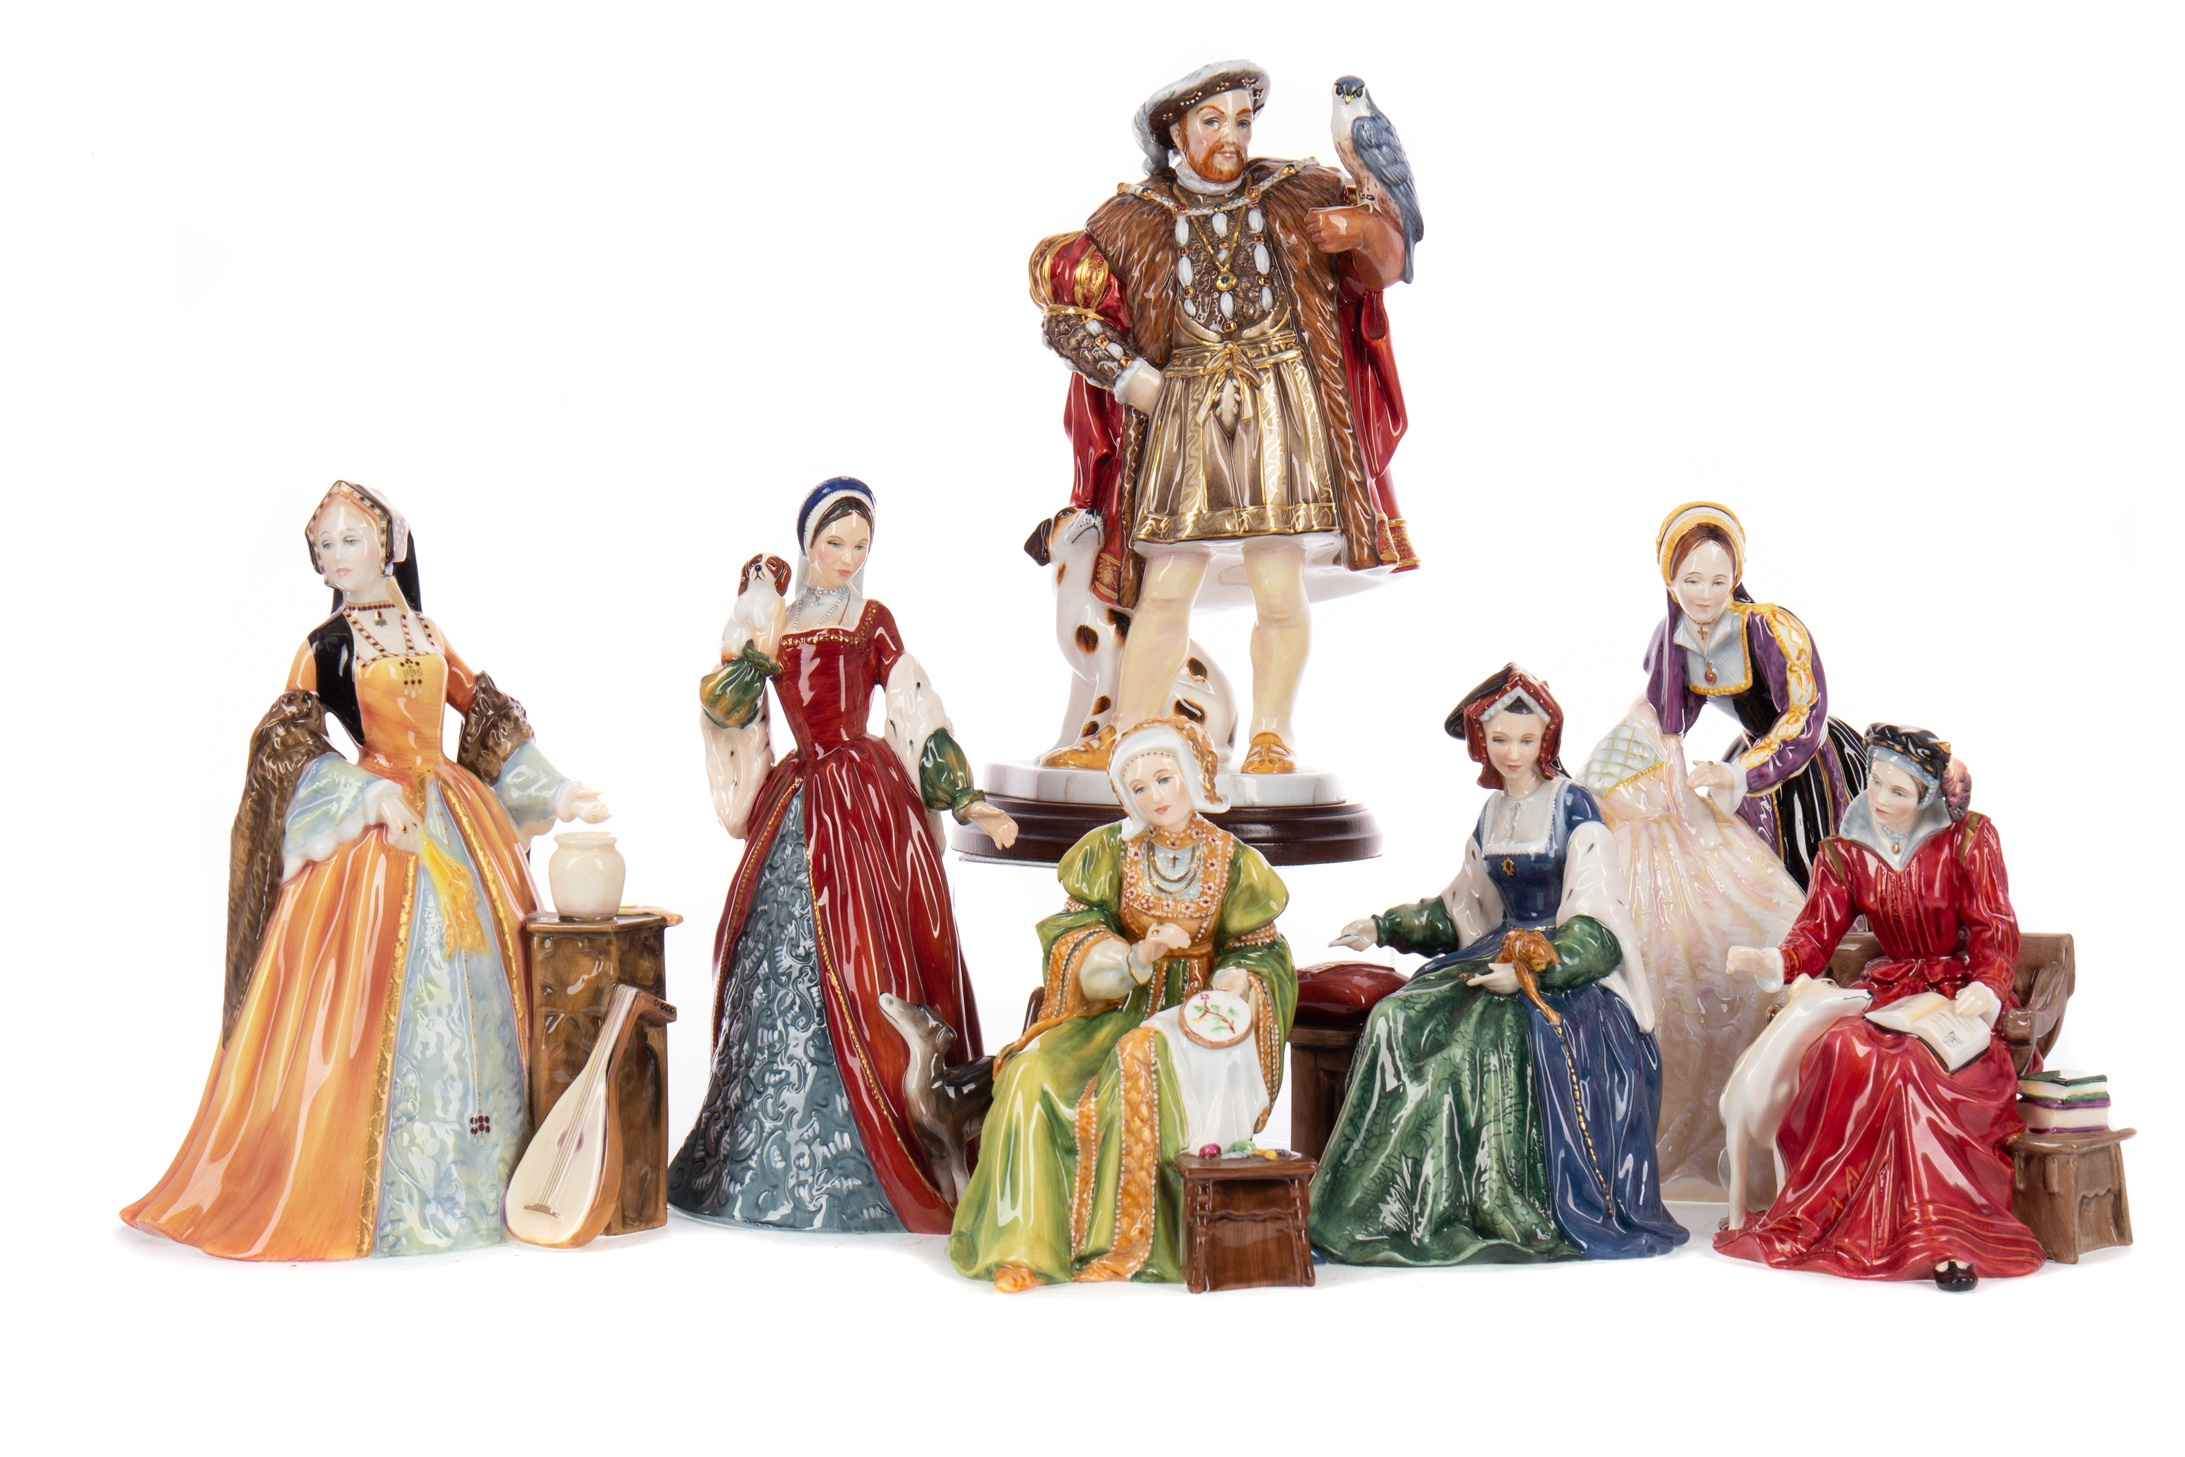 A SET OF ROYAL DOULTON FIGURES COMPRISING HENRY VIII AND HIS SIX WIVES